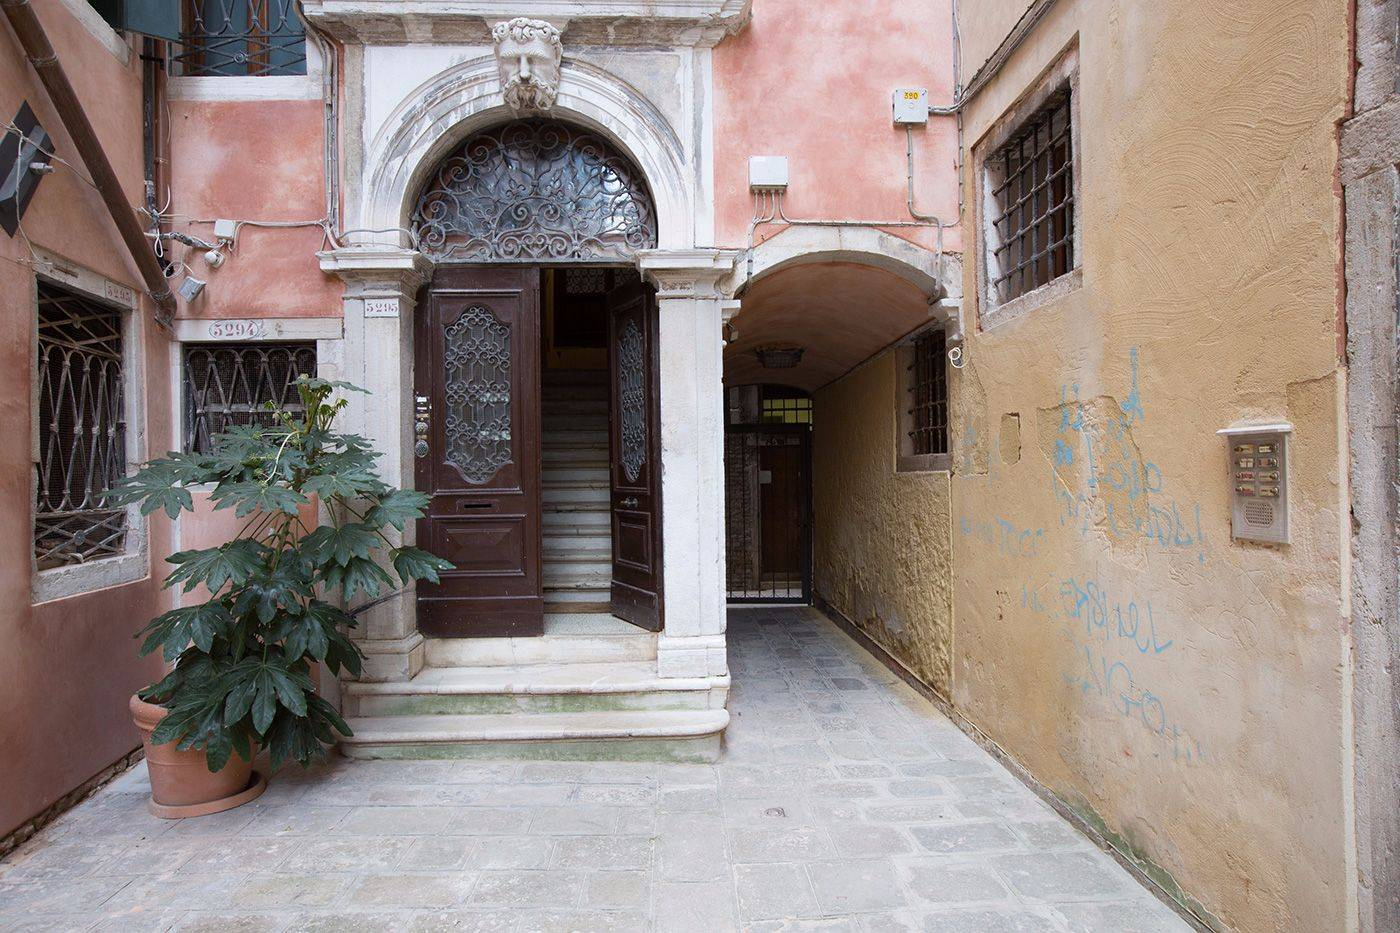 the entrance at the ground floor portal is Truly Venetian